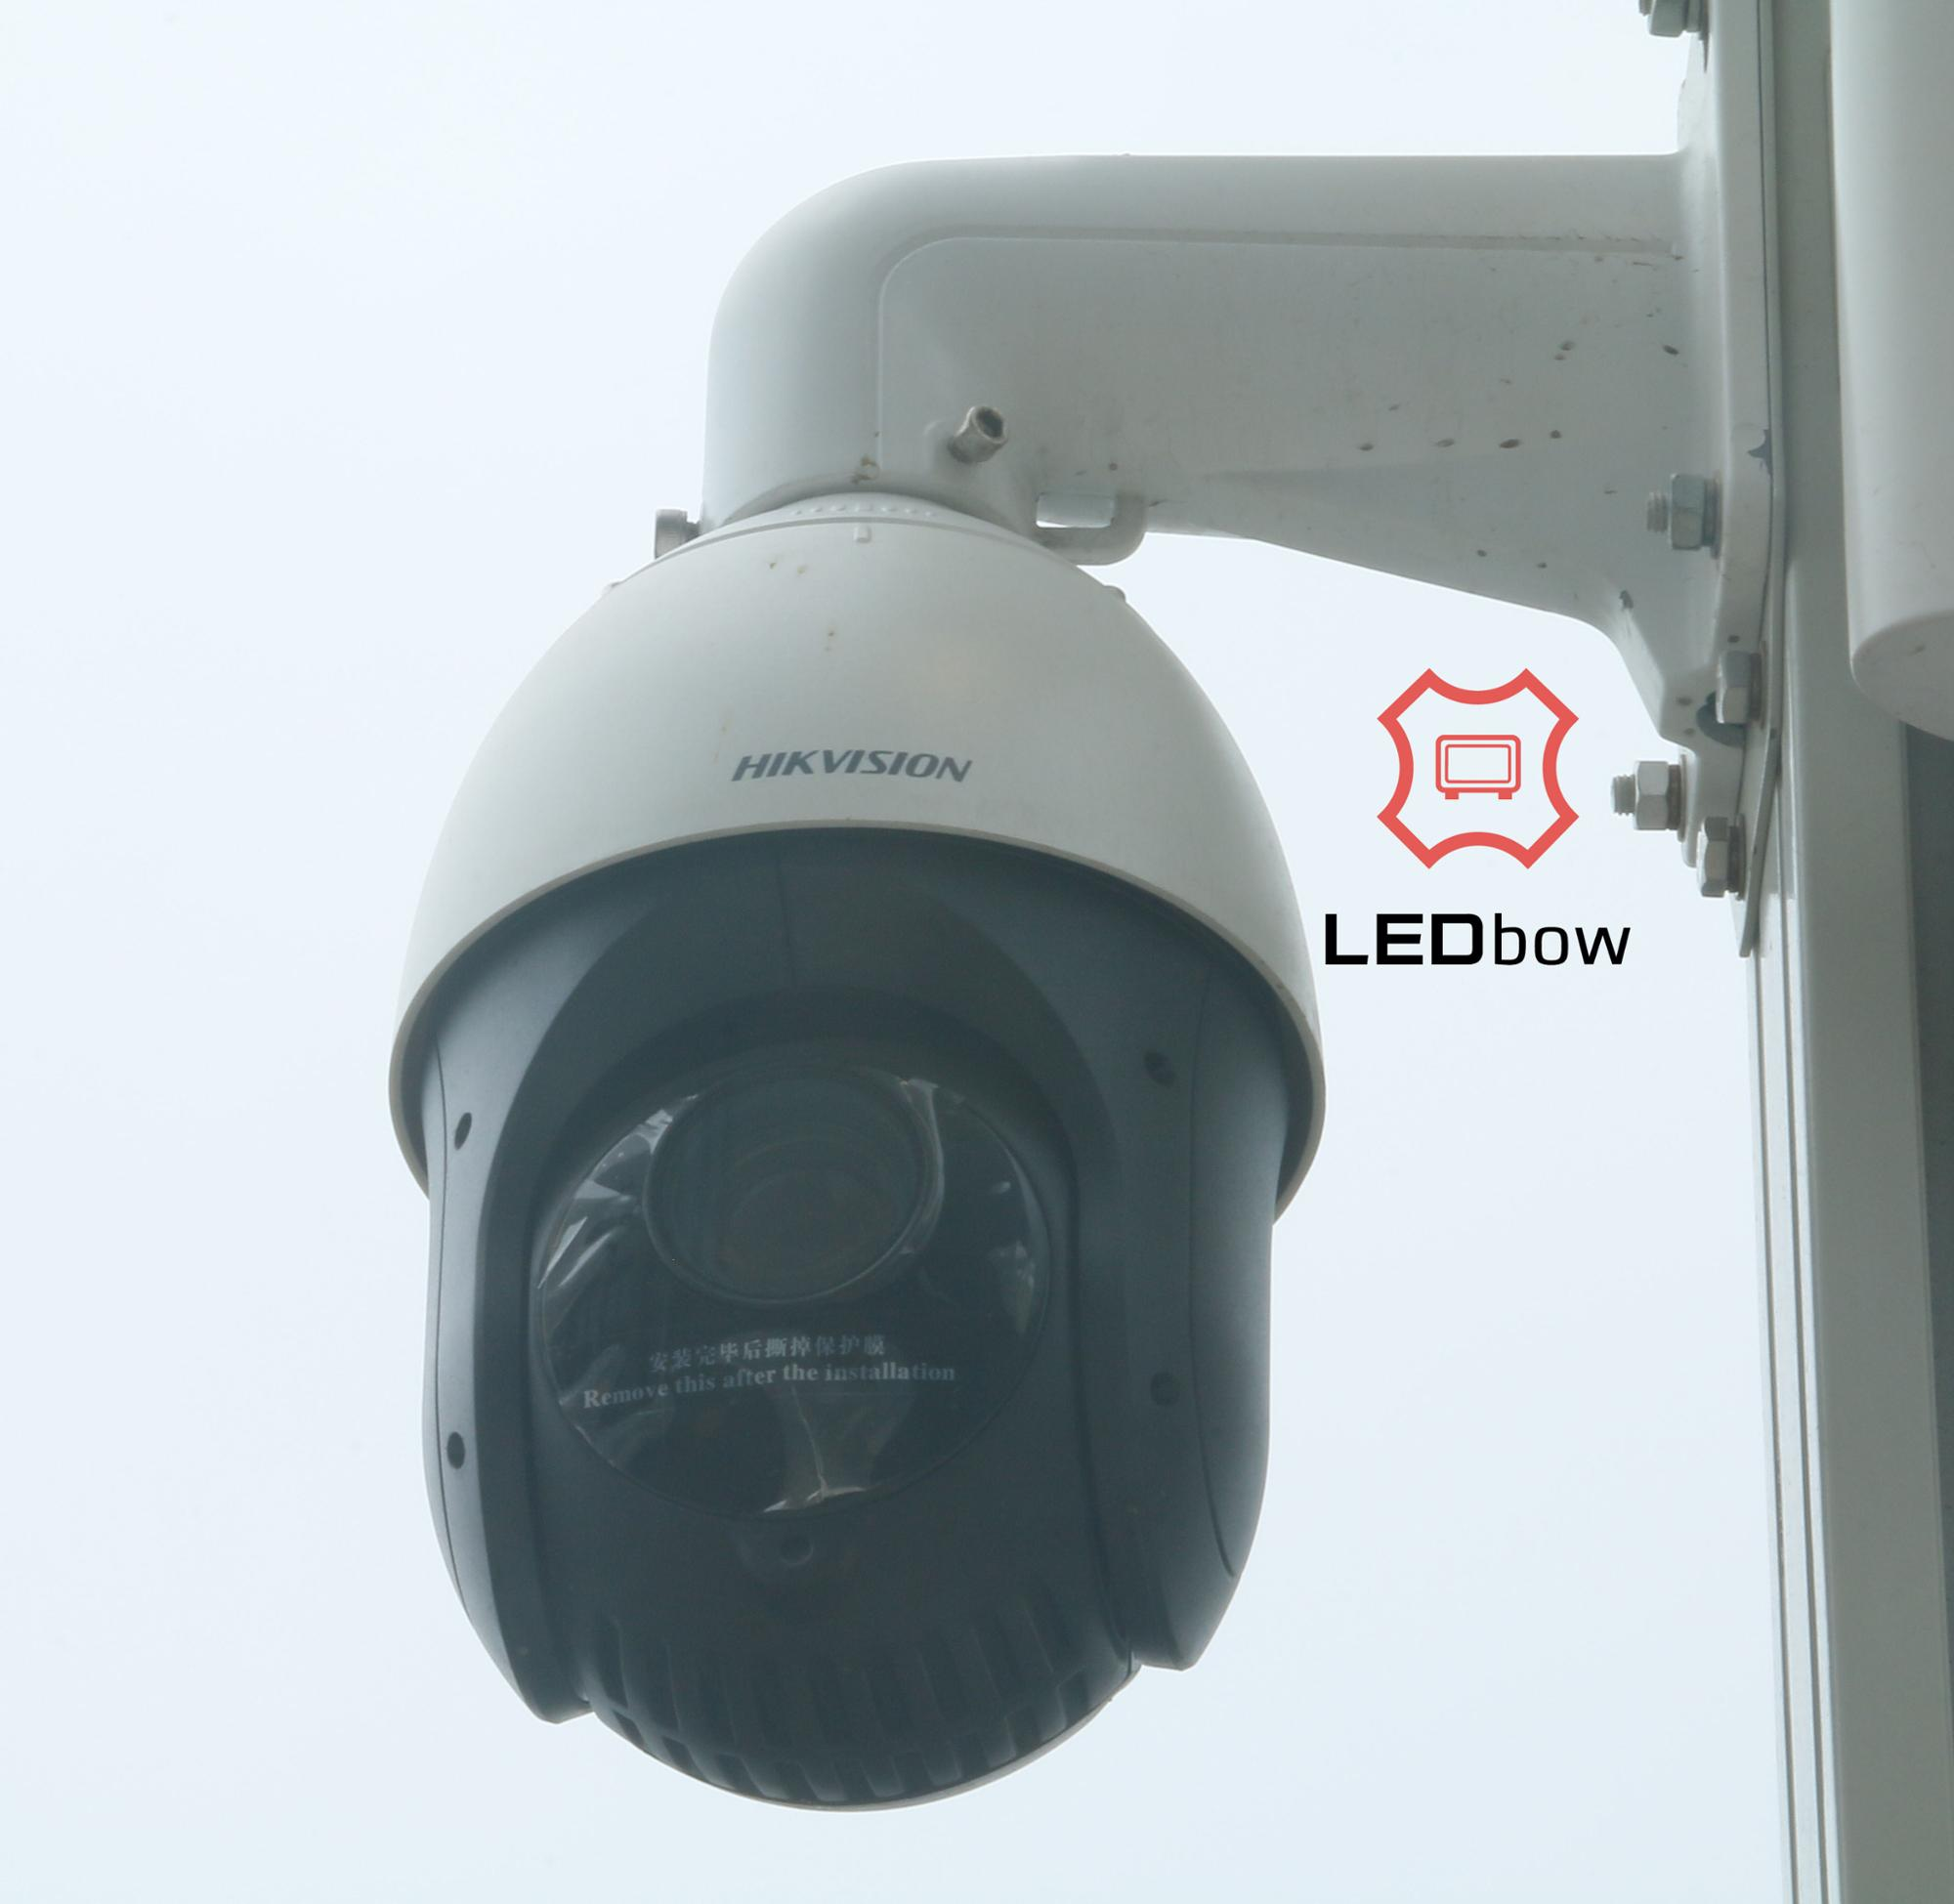 LEDbow All-weather Multi-function Integrated Smart Pole with Intelligent Cloud System Control